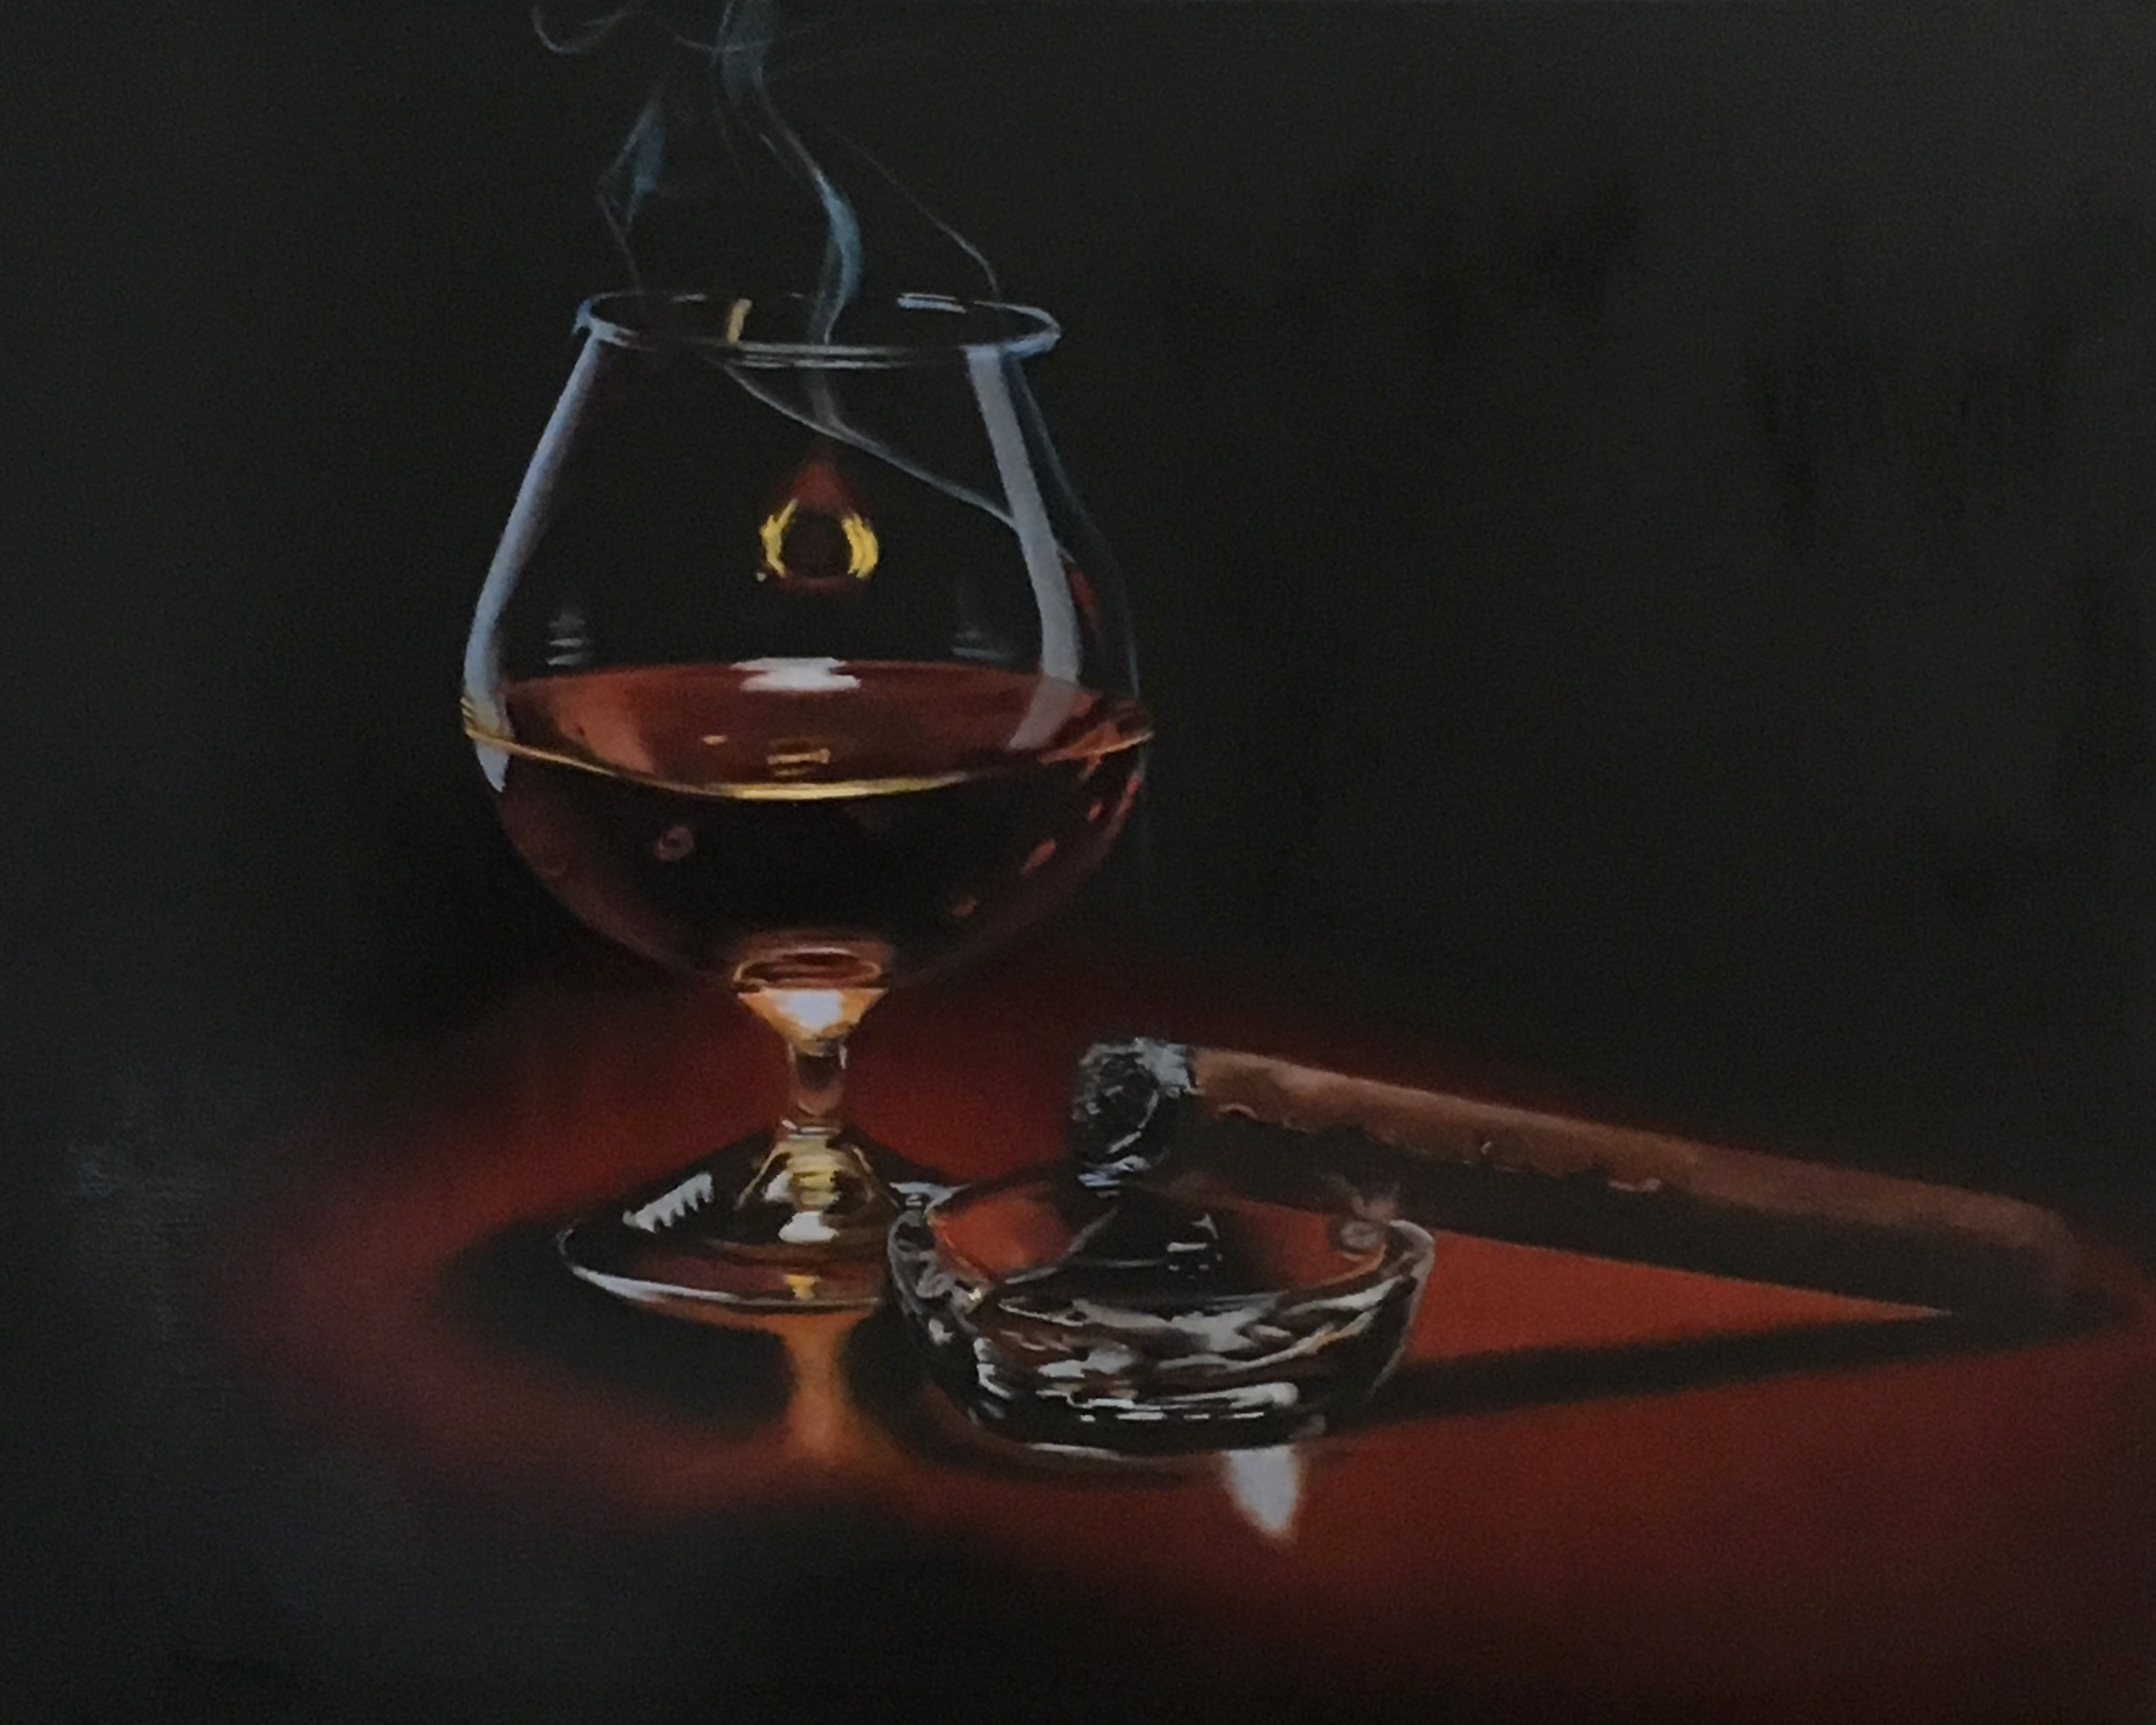 Cigar, ashtray and Brandy